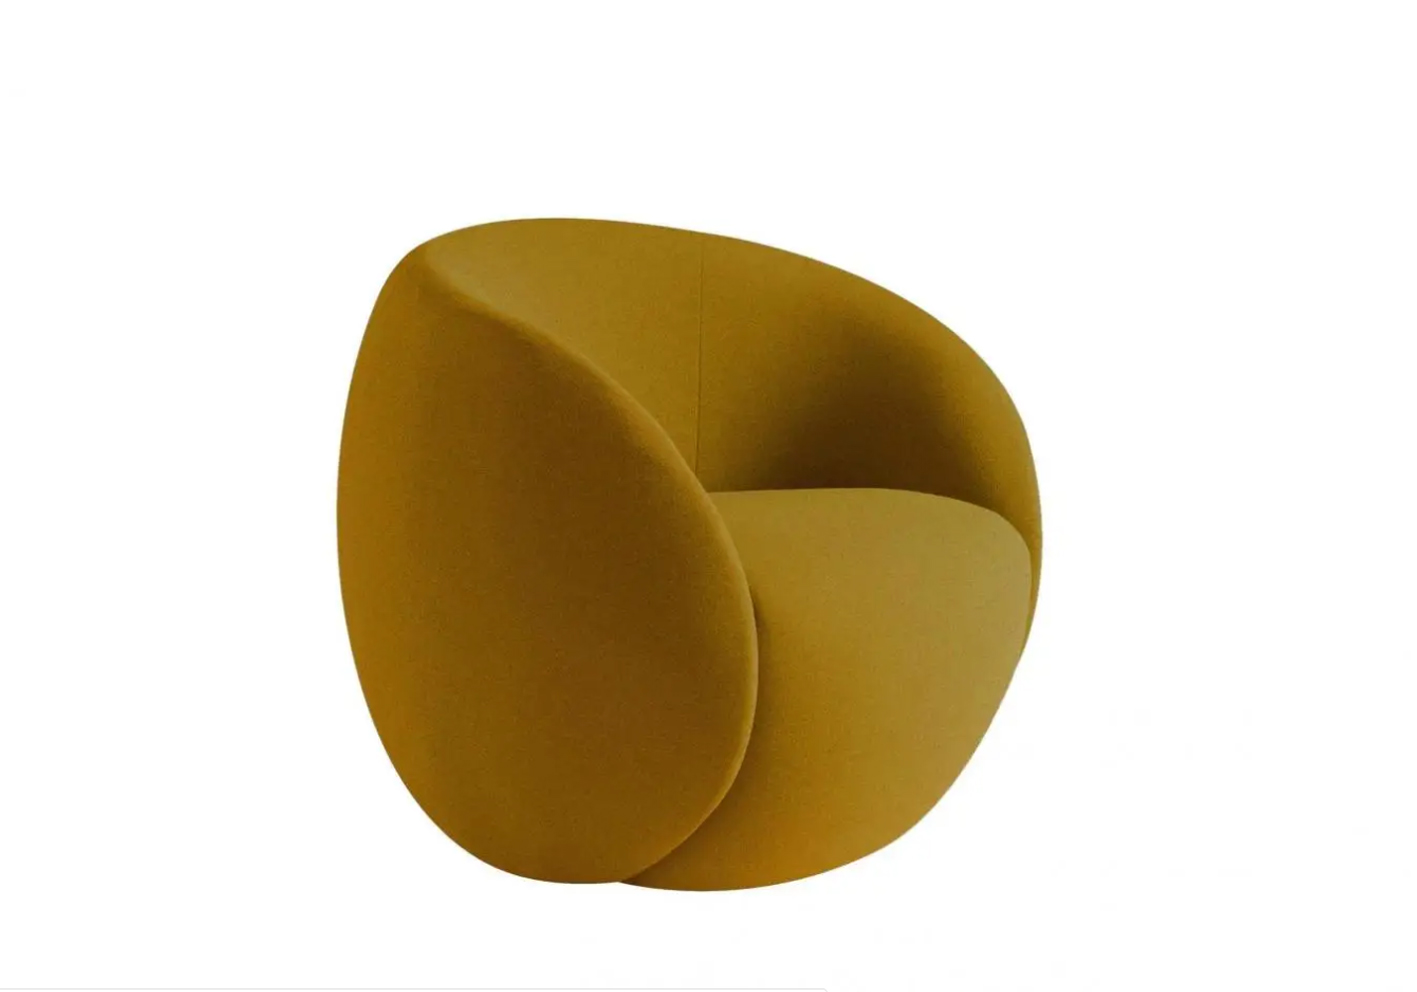 """Dot - a neat, rounded chair on a swivel base designed by Raphael Navot for Roche Bobois' Nativ collection - is upholstered in stretchy """"Lasti"""" fabric and available in yellow, blue or dark green plus grey."""